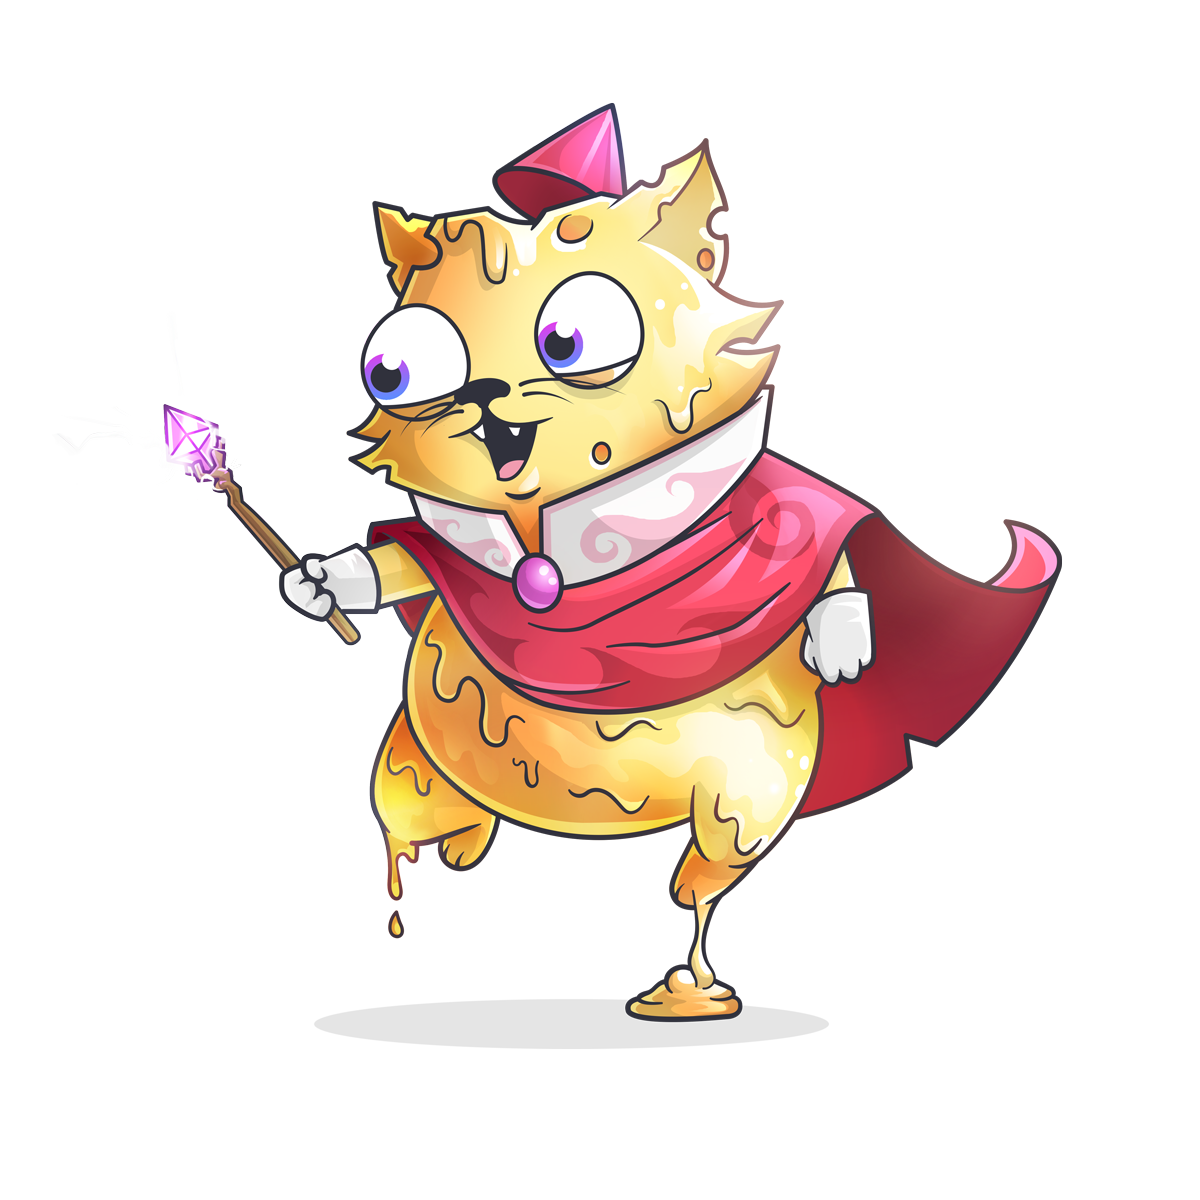 cryptokitty #1591334